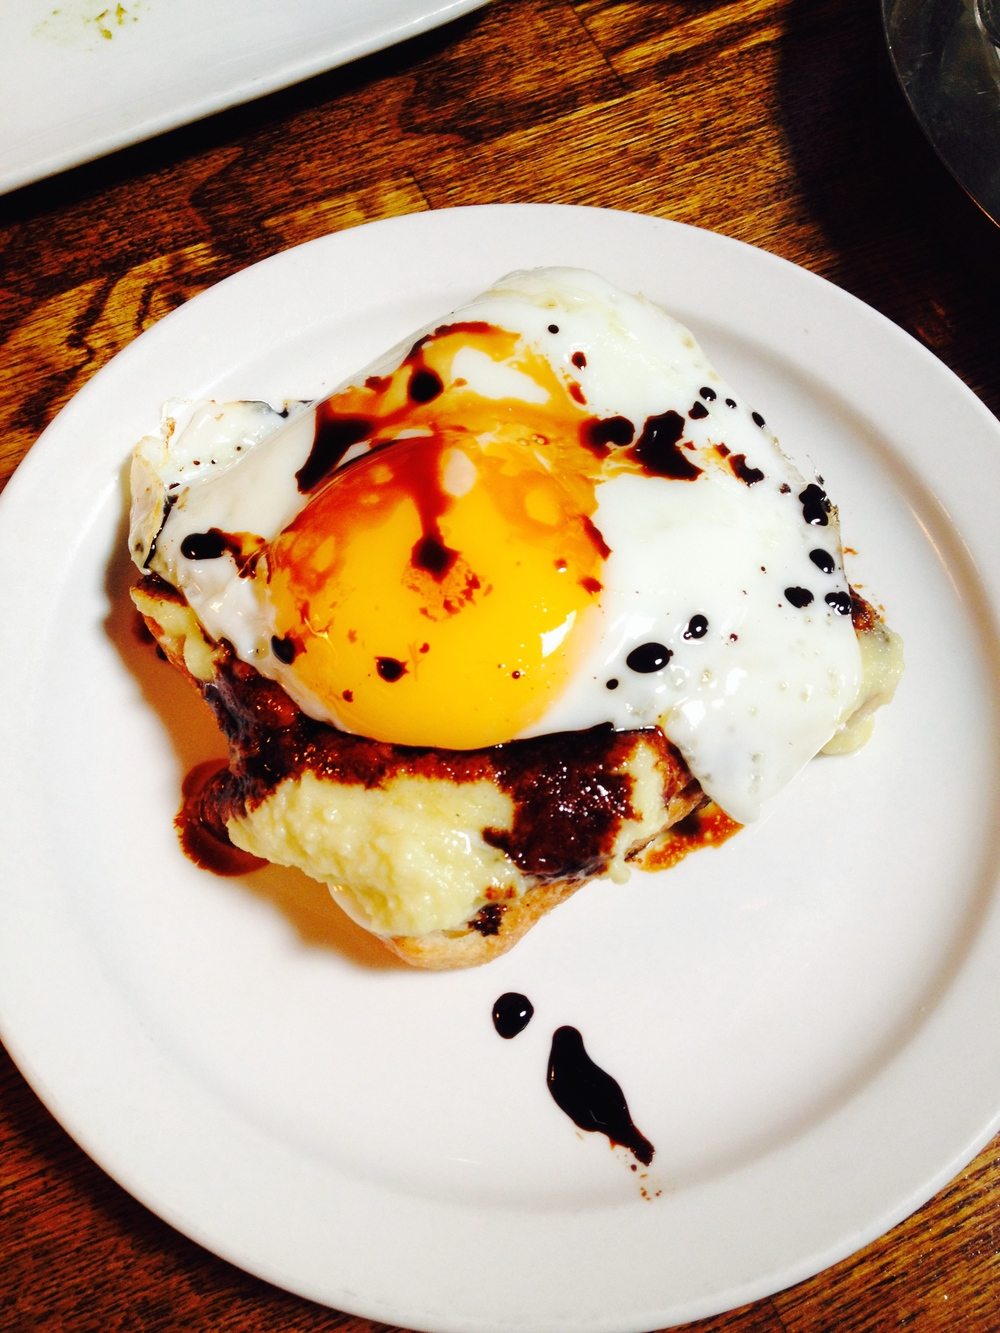 Kaya Toast - coconut jam served open face on toasted bread with soft fried egg and dark soy